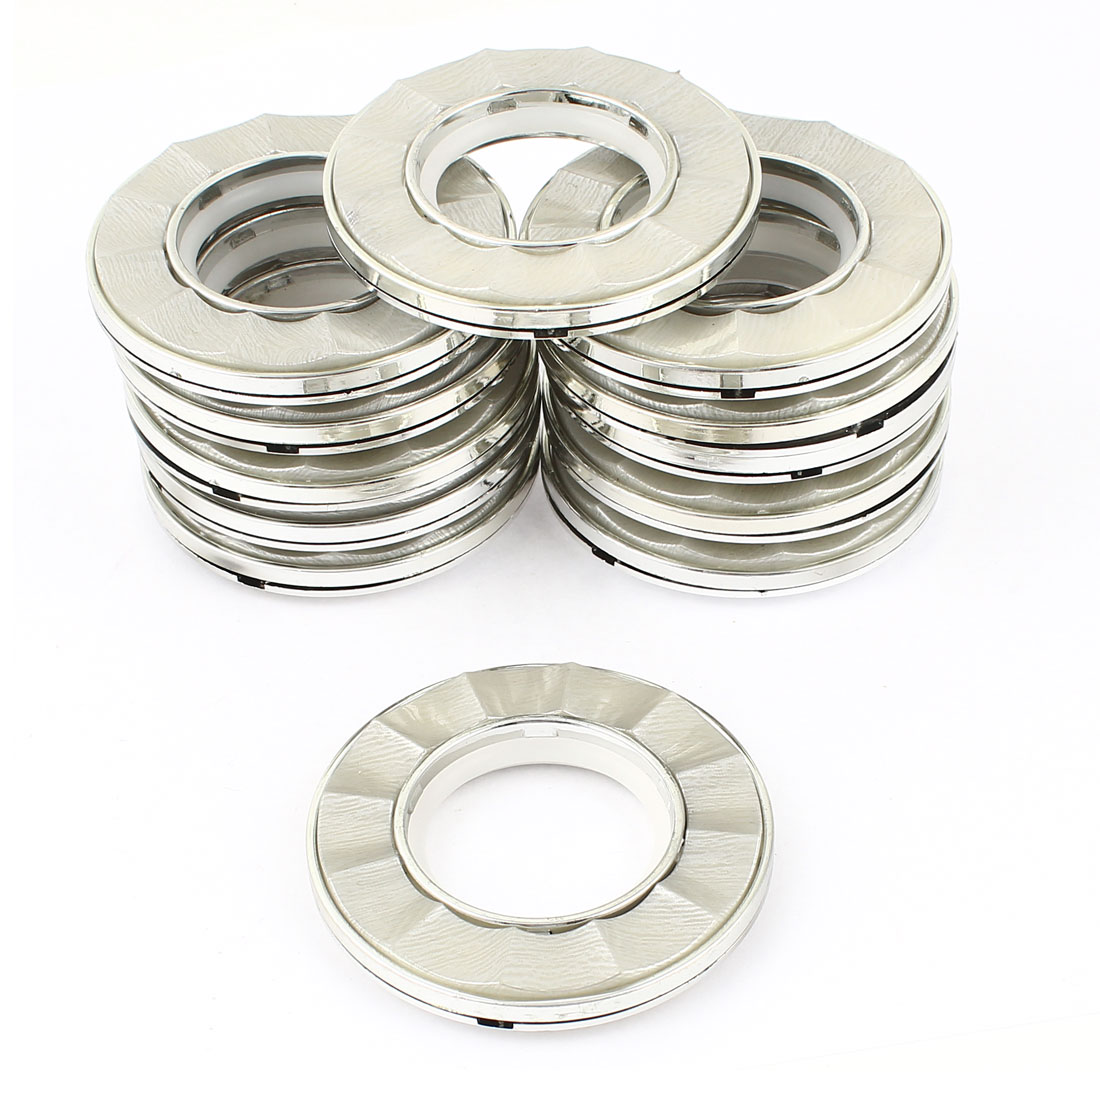 12 Pcs Silver Tone Plastic Ring 40mm Inner Dia. for Eyelet Curtain Drapery